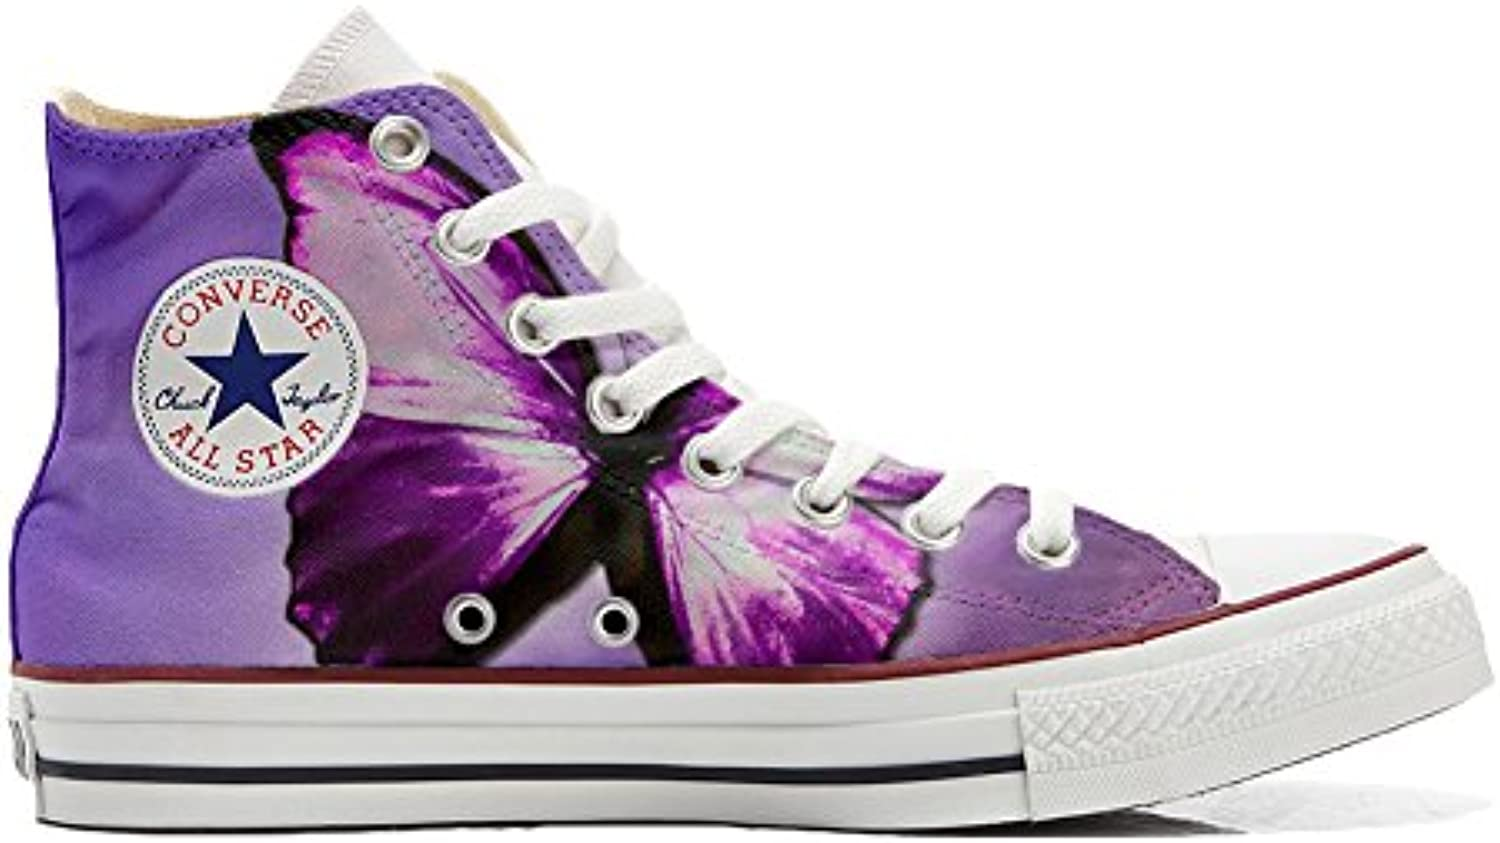 Converse All Star Customized - Zapatos Personalizados (Producto Artesano) Farfalla Butterfly  -